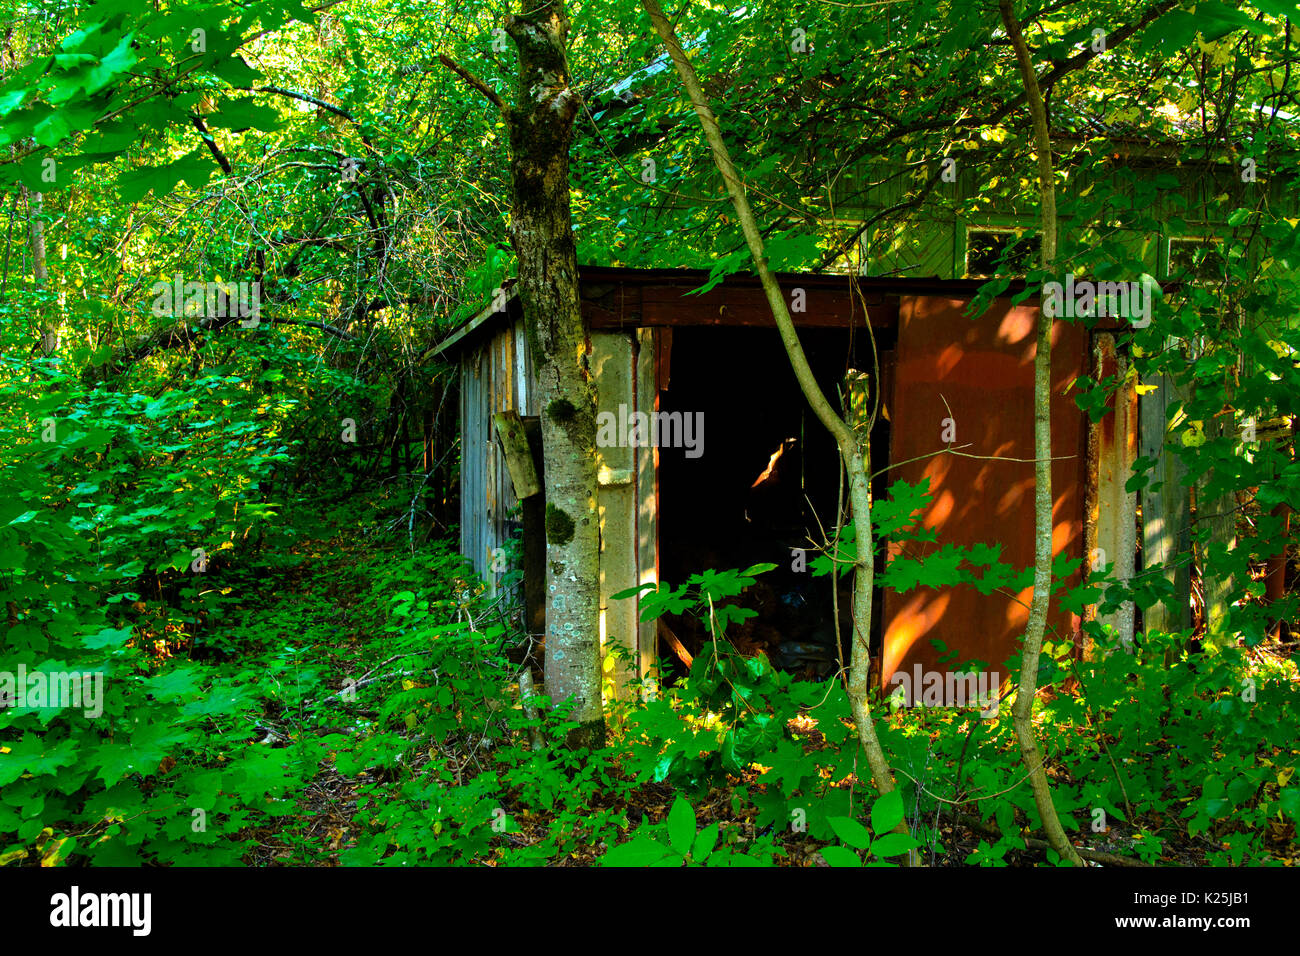 Destroyed houses in which people lived in a dead radioactive zone. Consequences of the Chernobyl nuclear disaster and vandalism, August 2017. - Stock Image